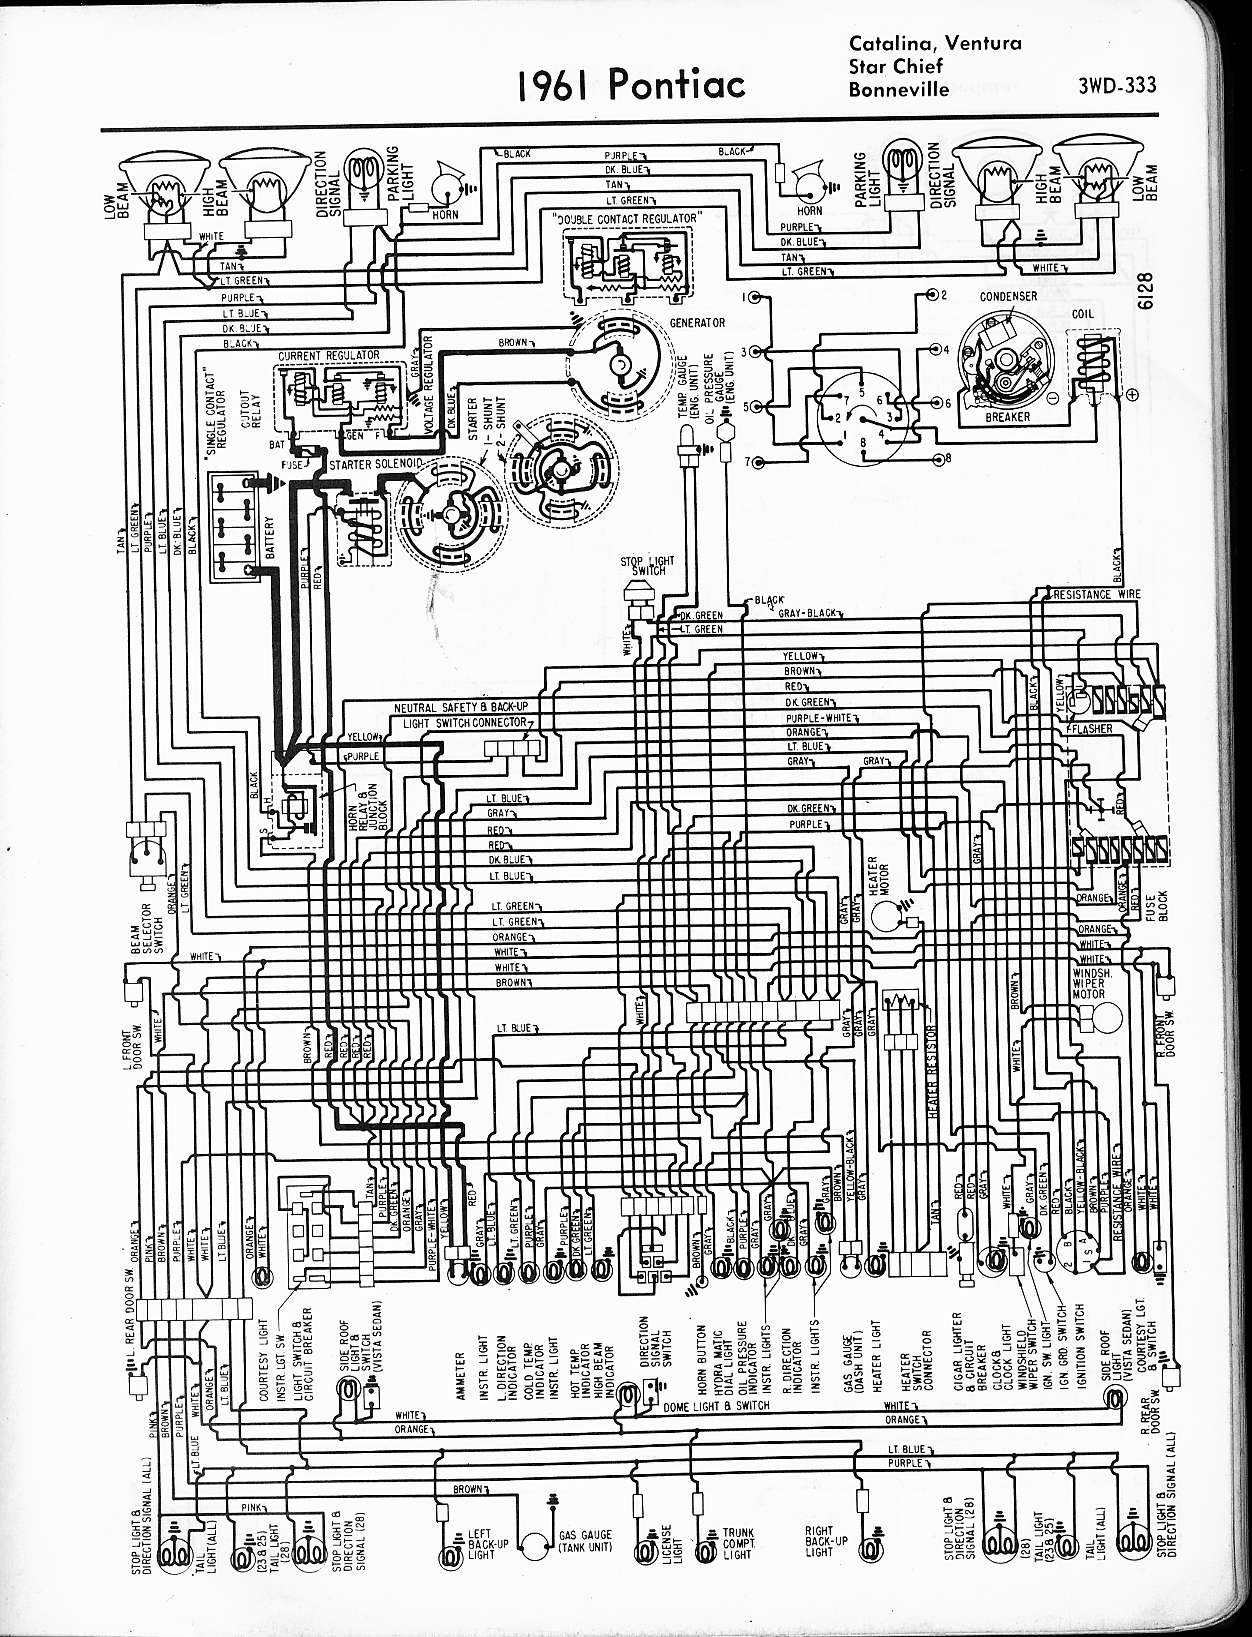 Wiring Diagram For Pontiac Bonneville Library 2004 1961 Catalina Star Chief Ventura